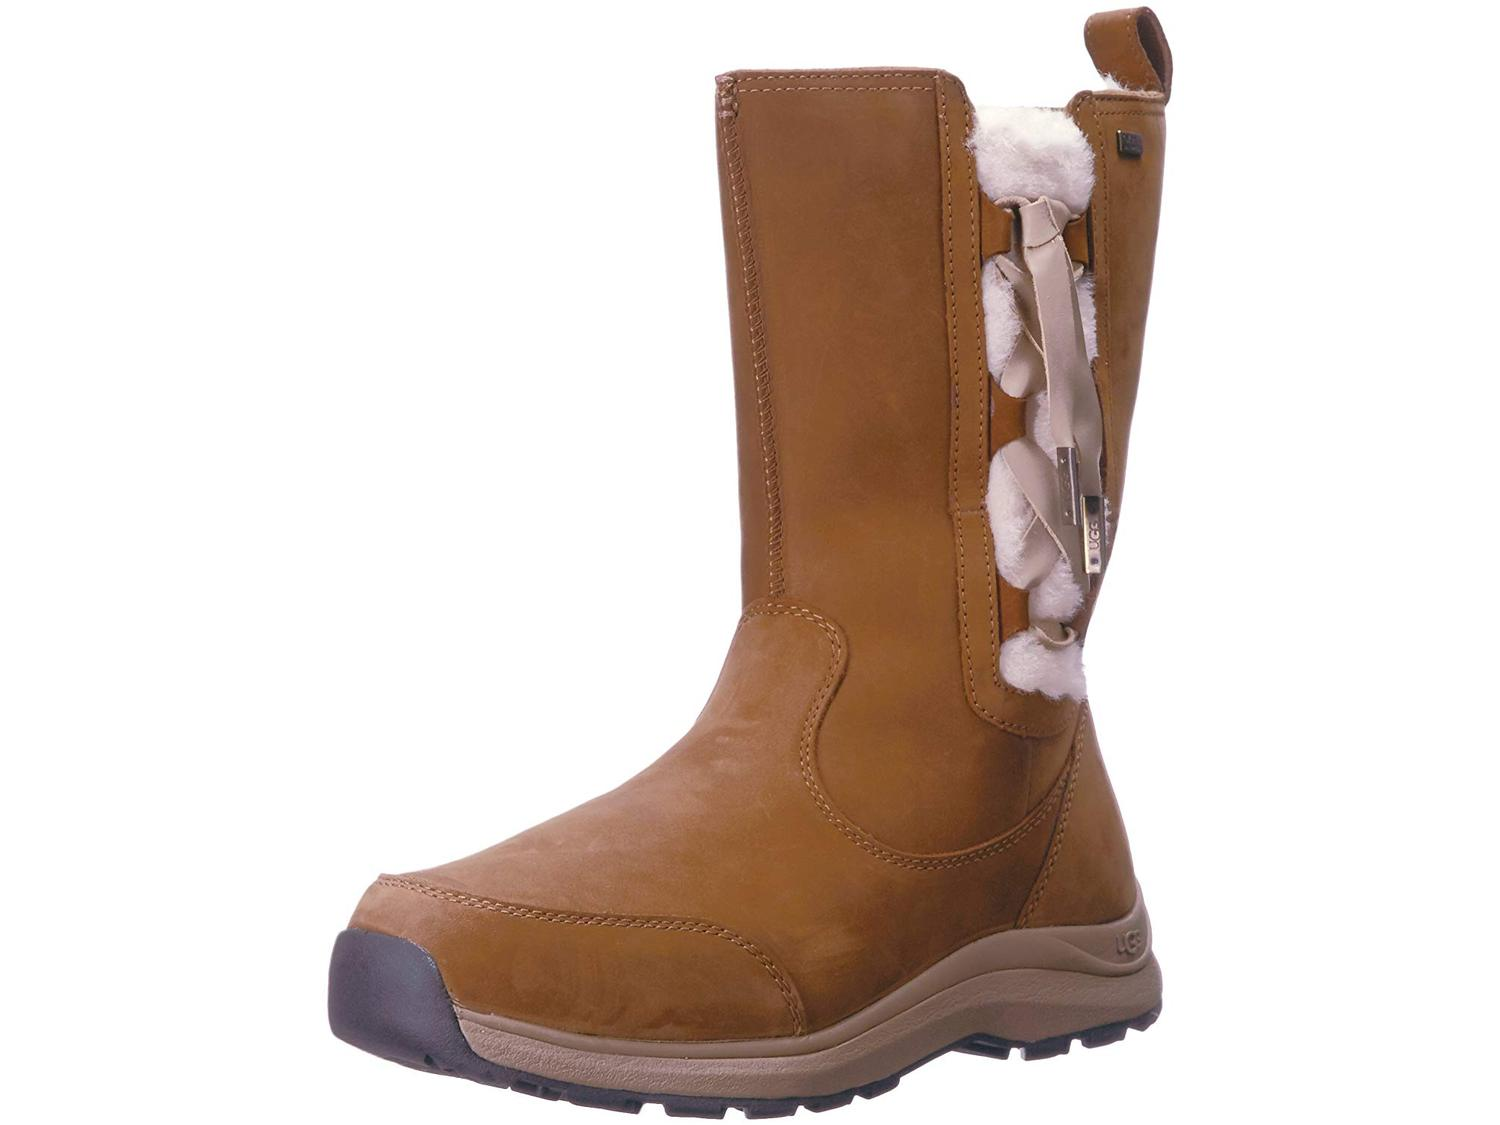 6ae89d755ce Women's Suvi Snow Boot, Chestnut, Size 8.0